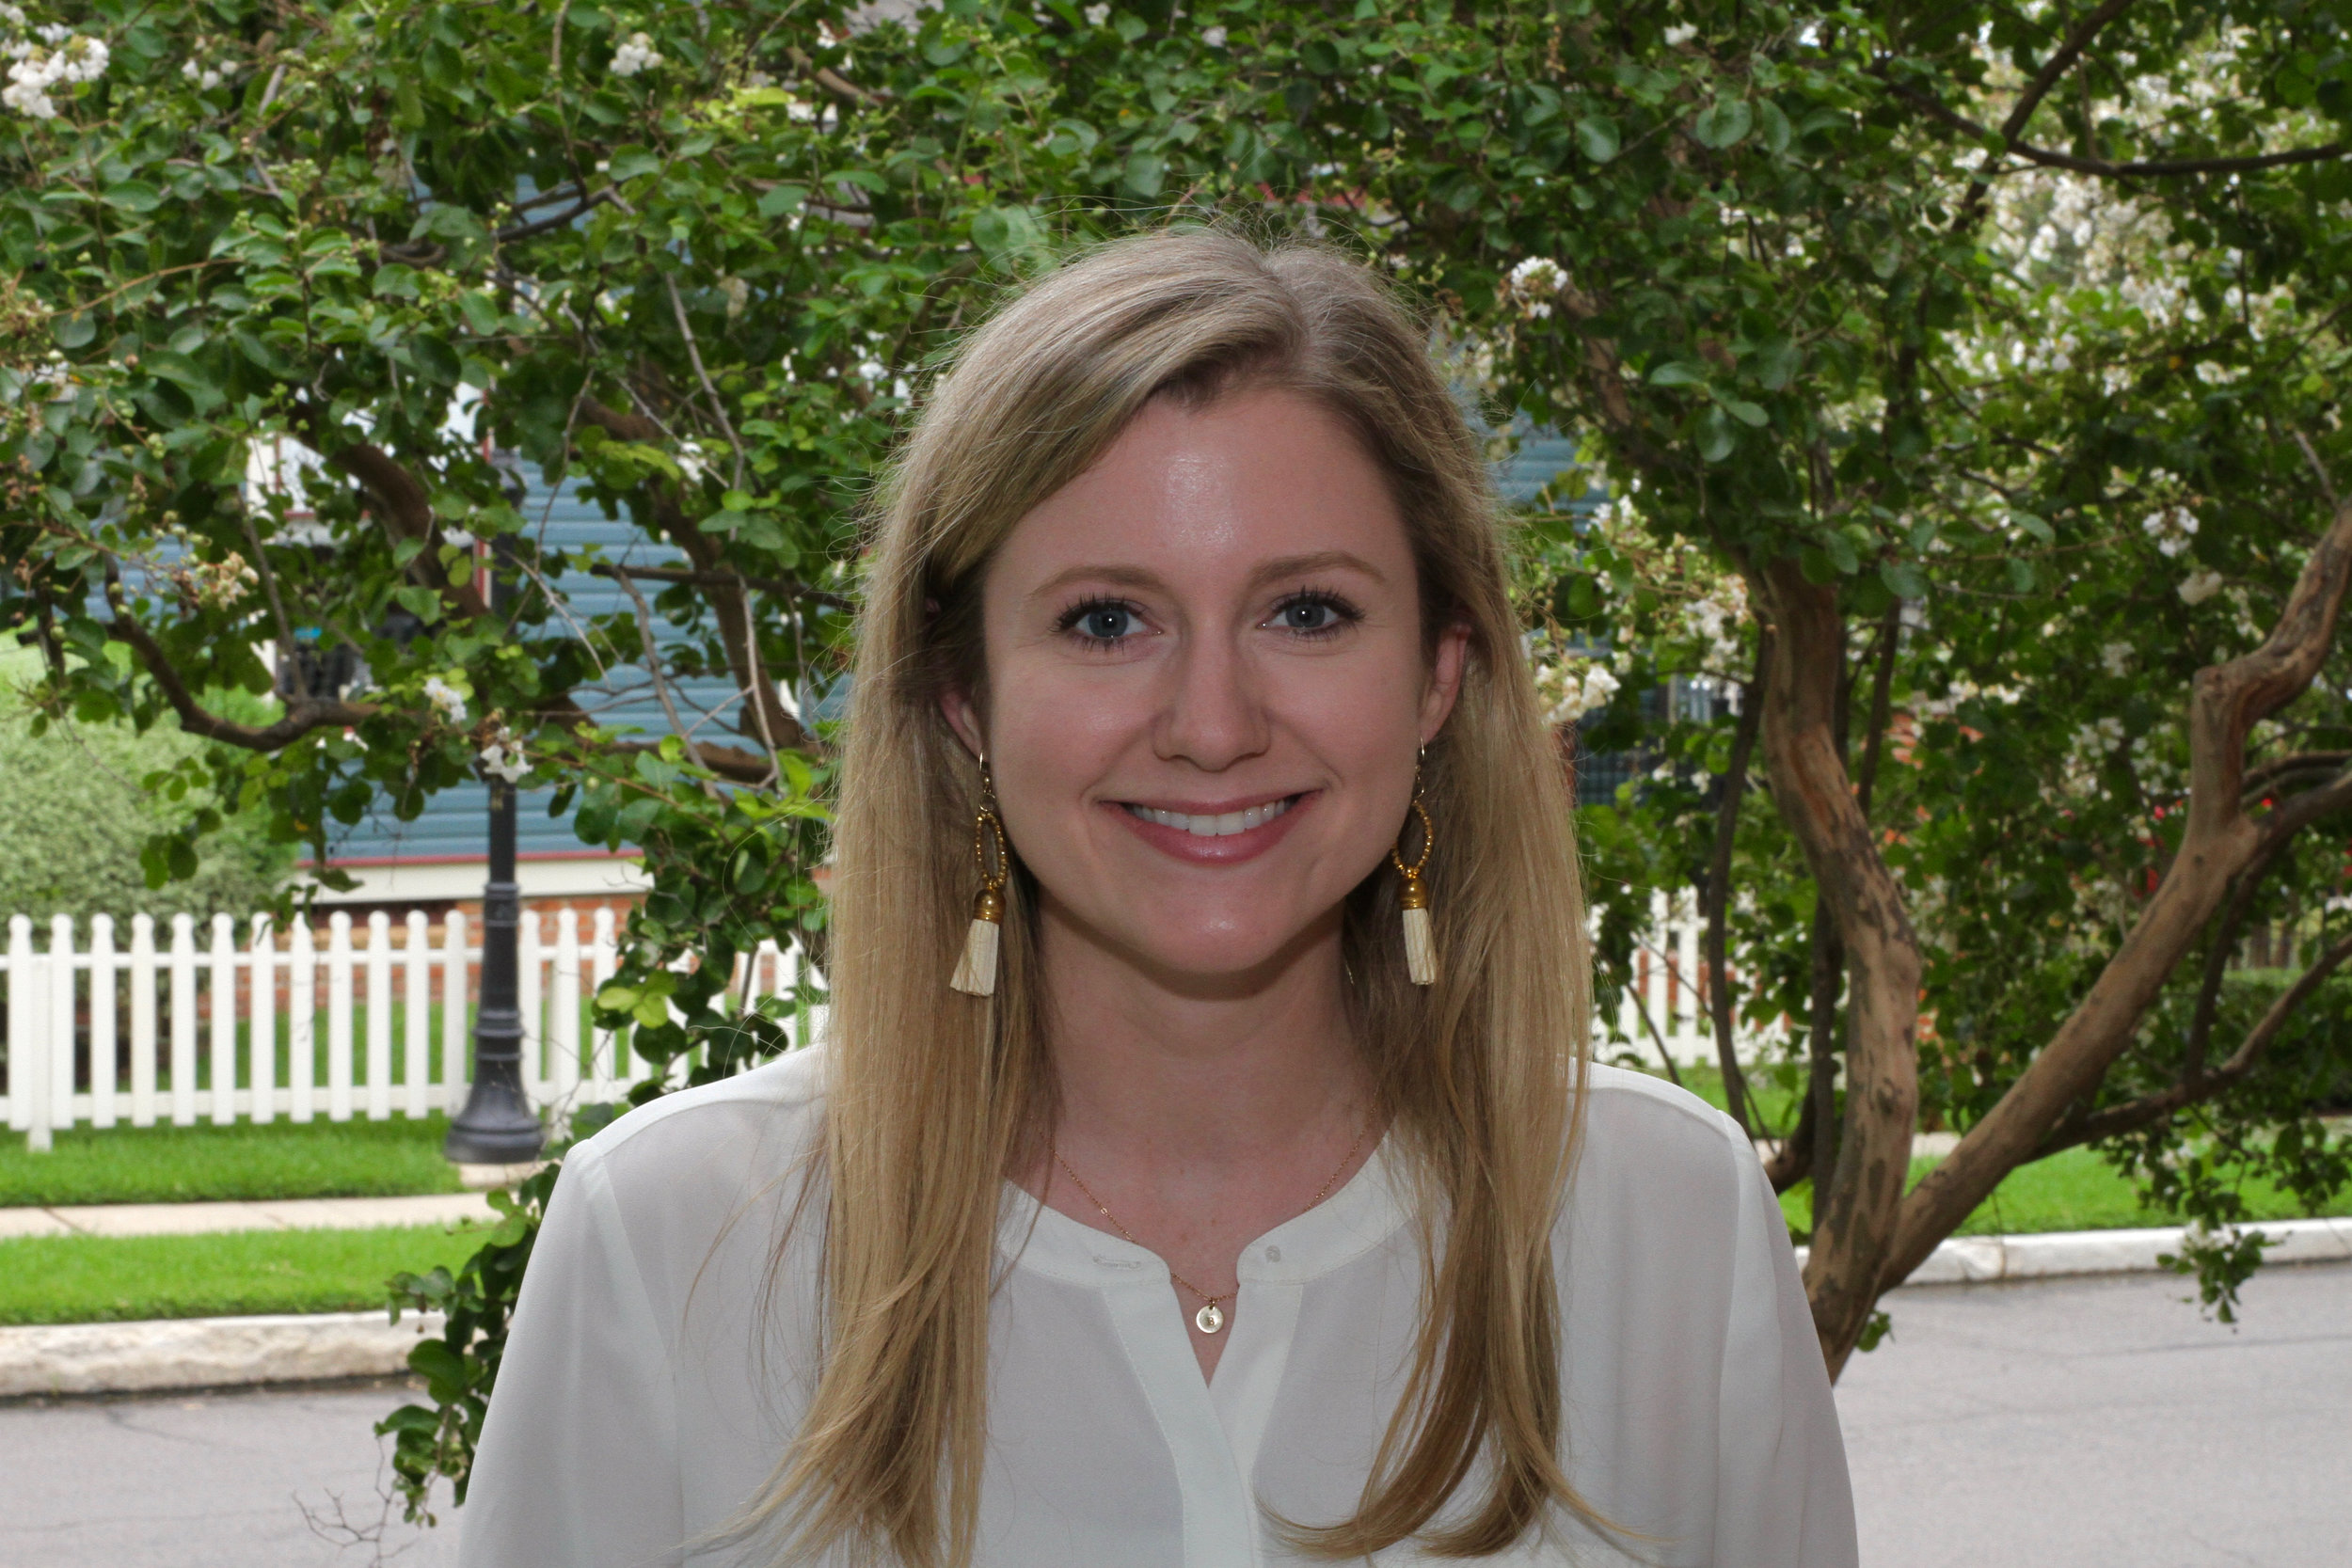 Amanda previously worked for Bank of America in downtown Dallas where she managed a lending portfolio of 25 large corporate clients. Her successful interface with those clients and with internal teams led to her promotion at the bank to Assistant Vice President. Personally, Amanda has a passion for encouraging others to aspire for personal growth and to live wholeheartedly. Amanda grew up and currently resides in Dallas, Texas. She attended Highland Park High School and graduated from Texas A&M University with a Bachelor in Finance.